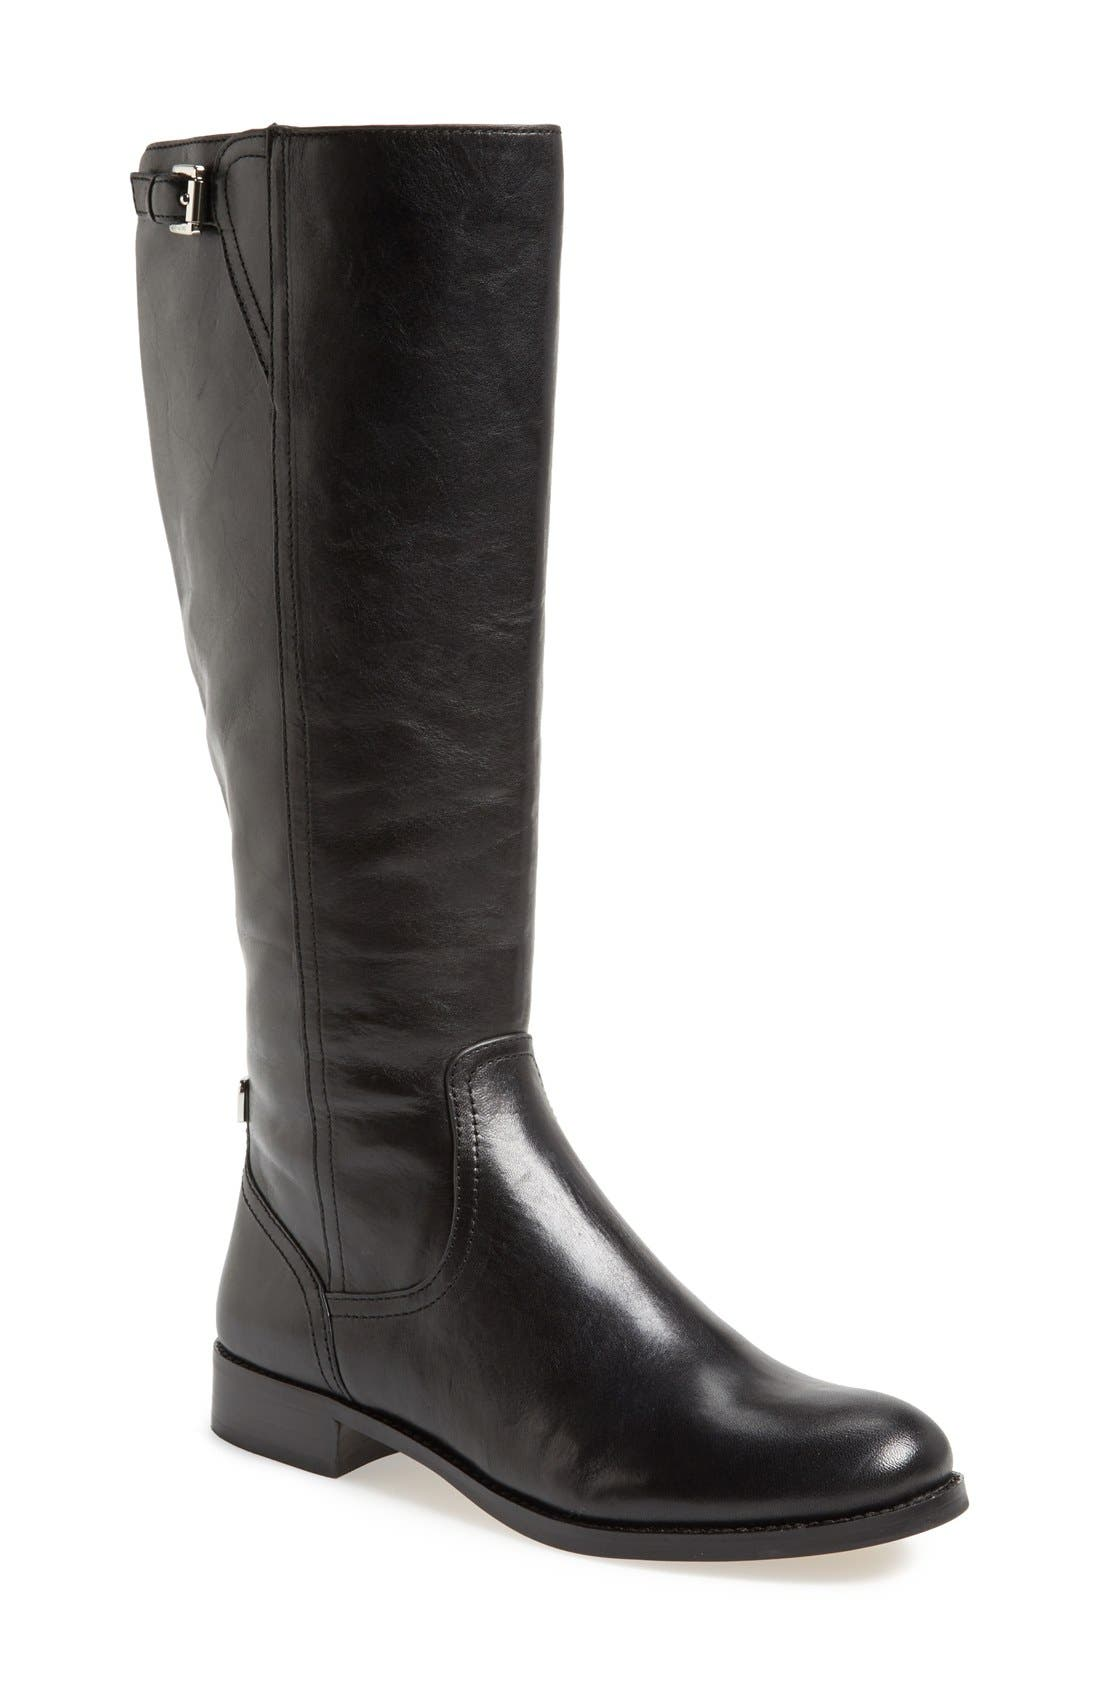 Main Image - COACH 'Mirriam' Leather Riding Boot (Women)